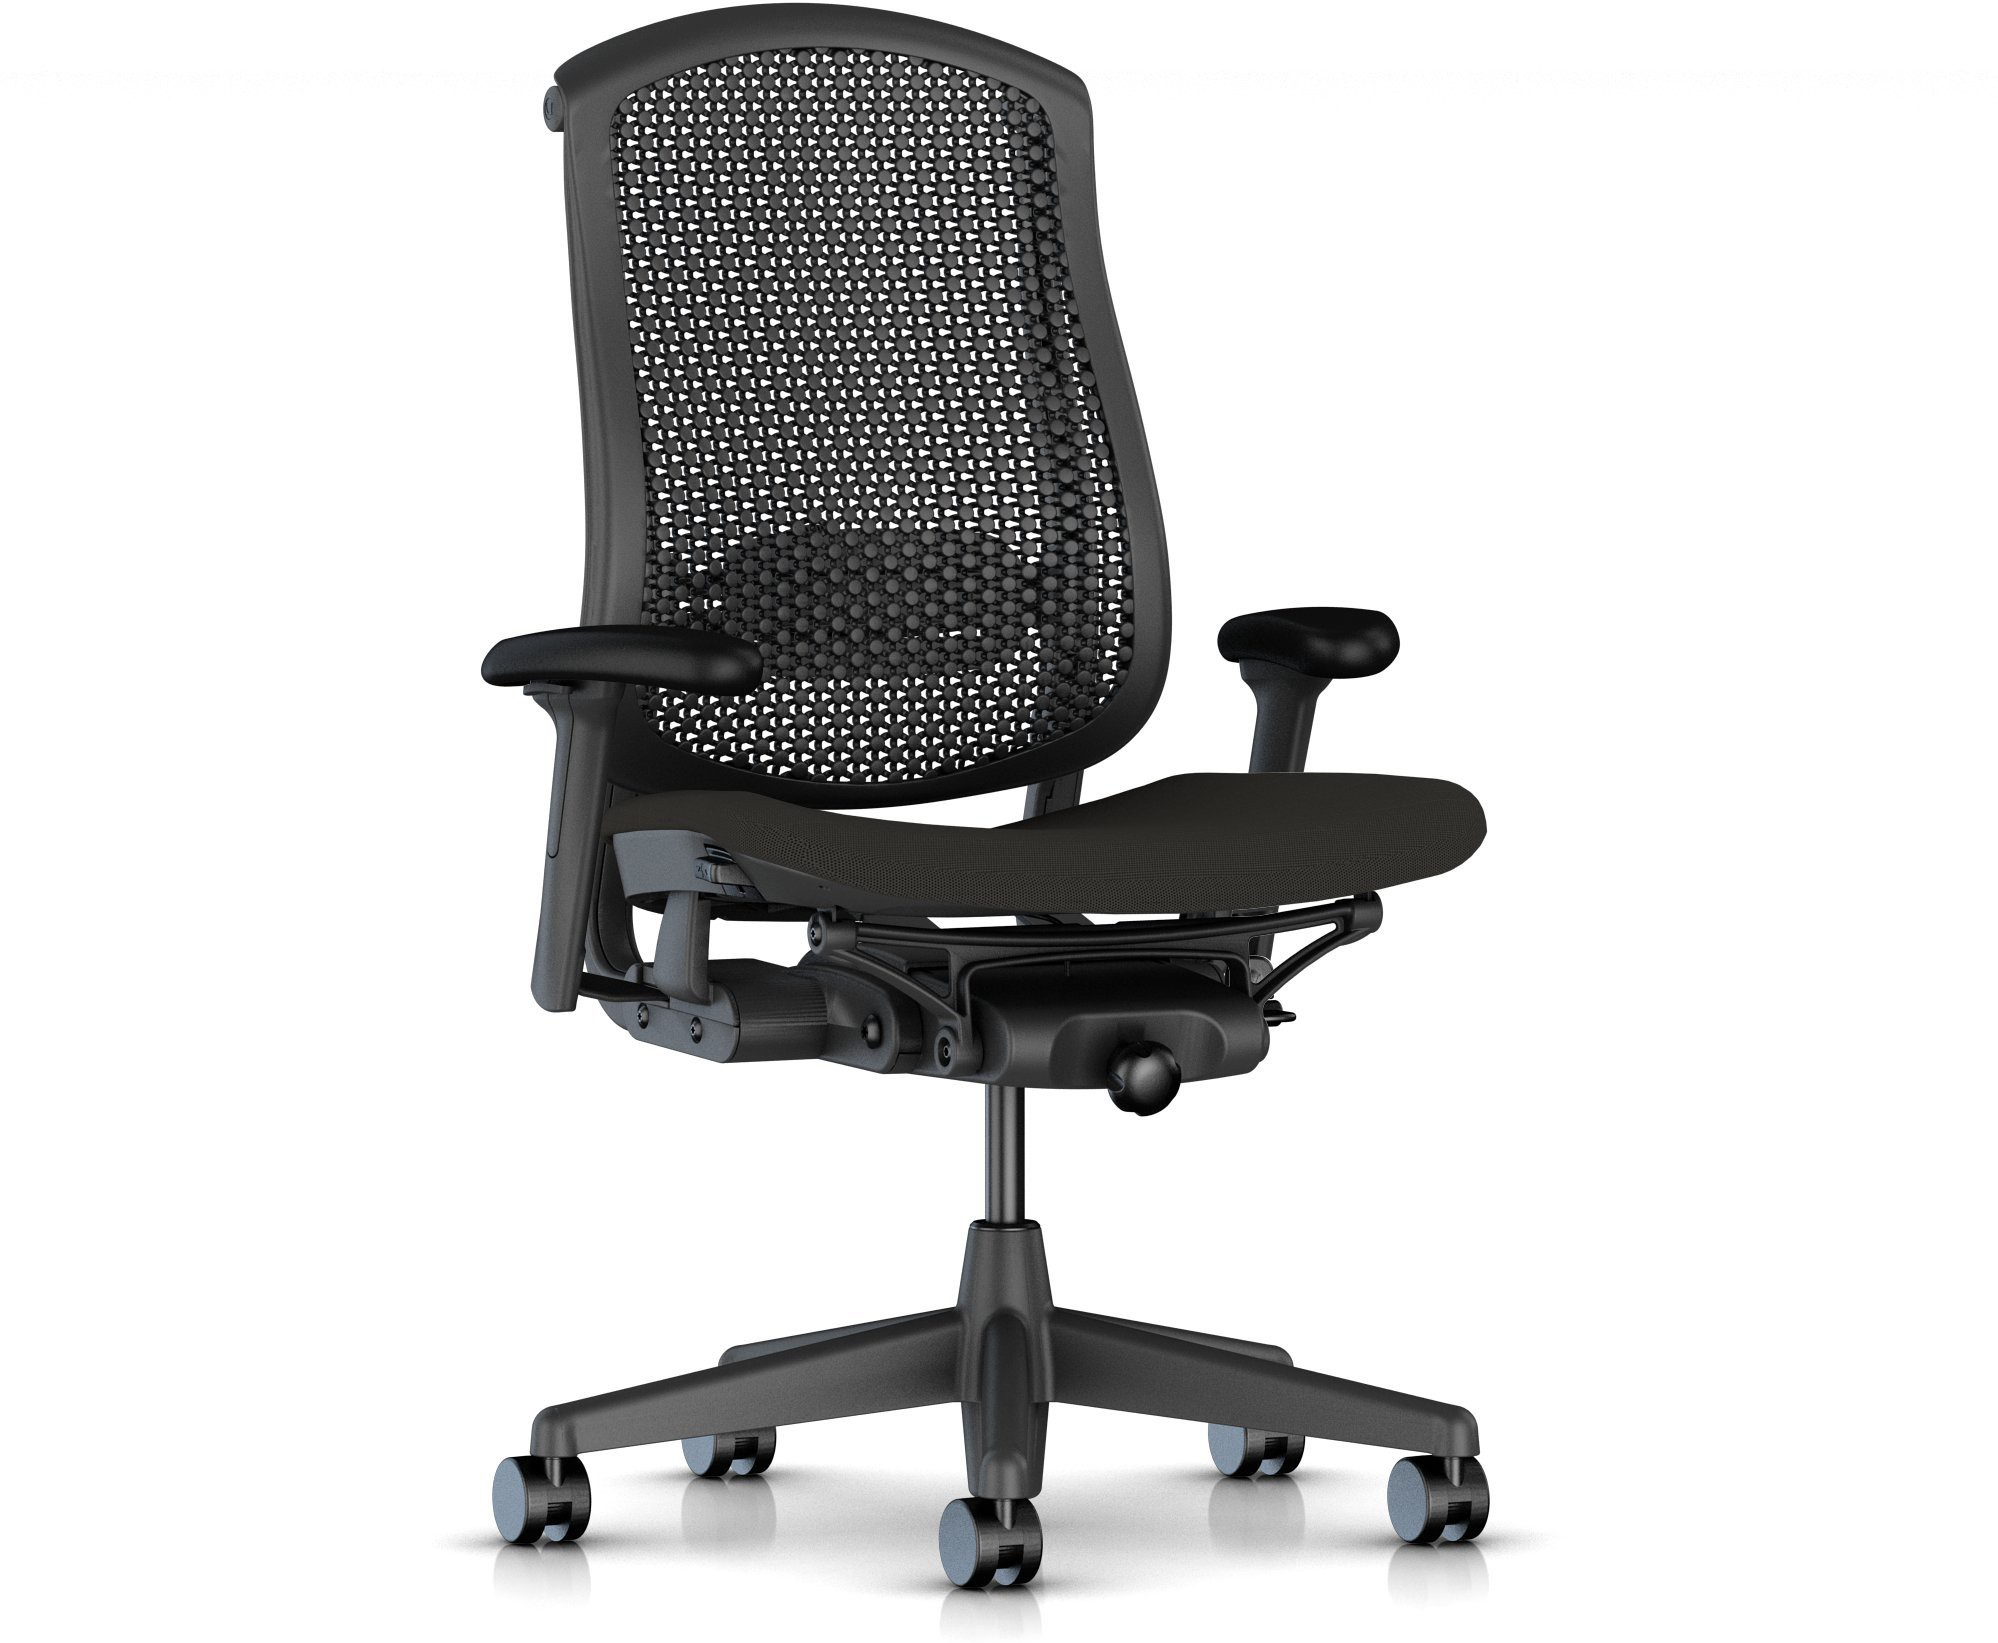 View HermanMiller Celle - Graphite Cellular back with Graphite upholstered Seat Cushion : Cellular Suspension NA Office Chair(Black) Furniture (HermanMiller)